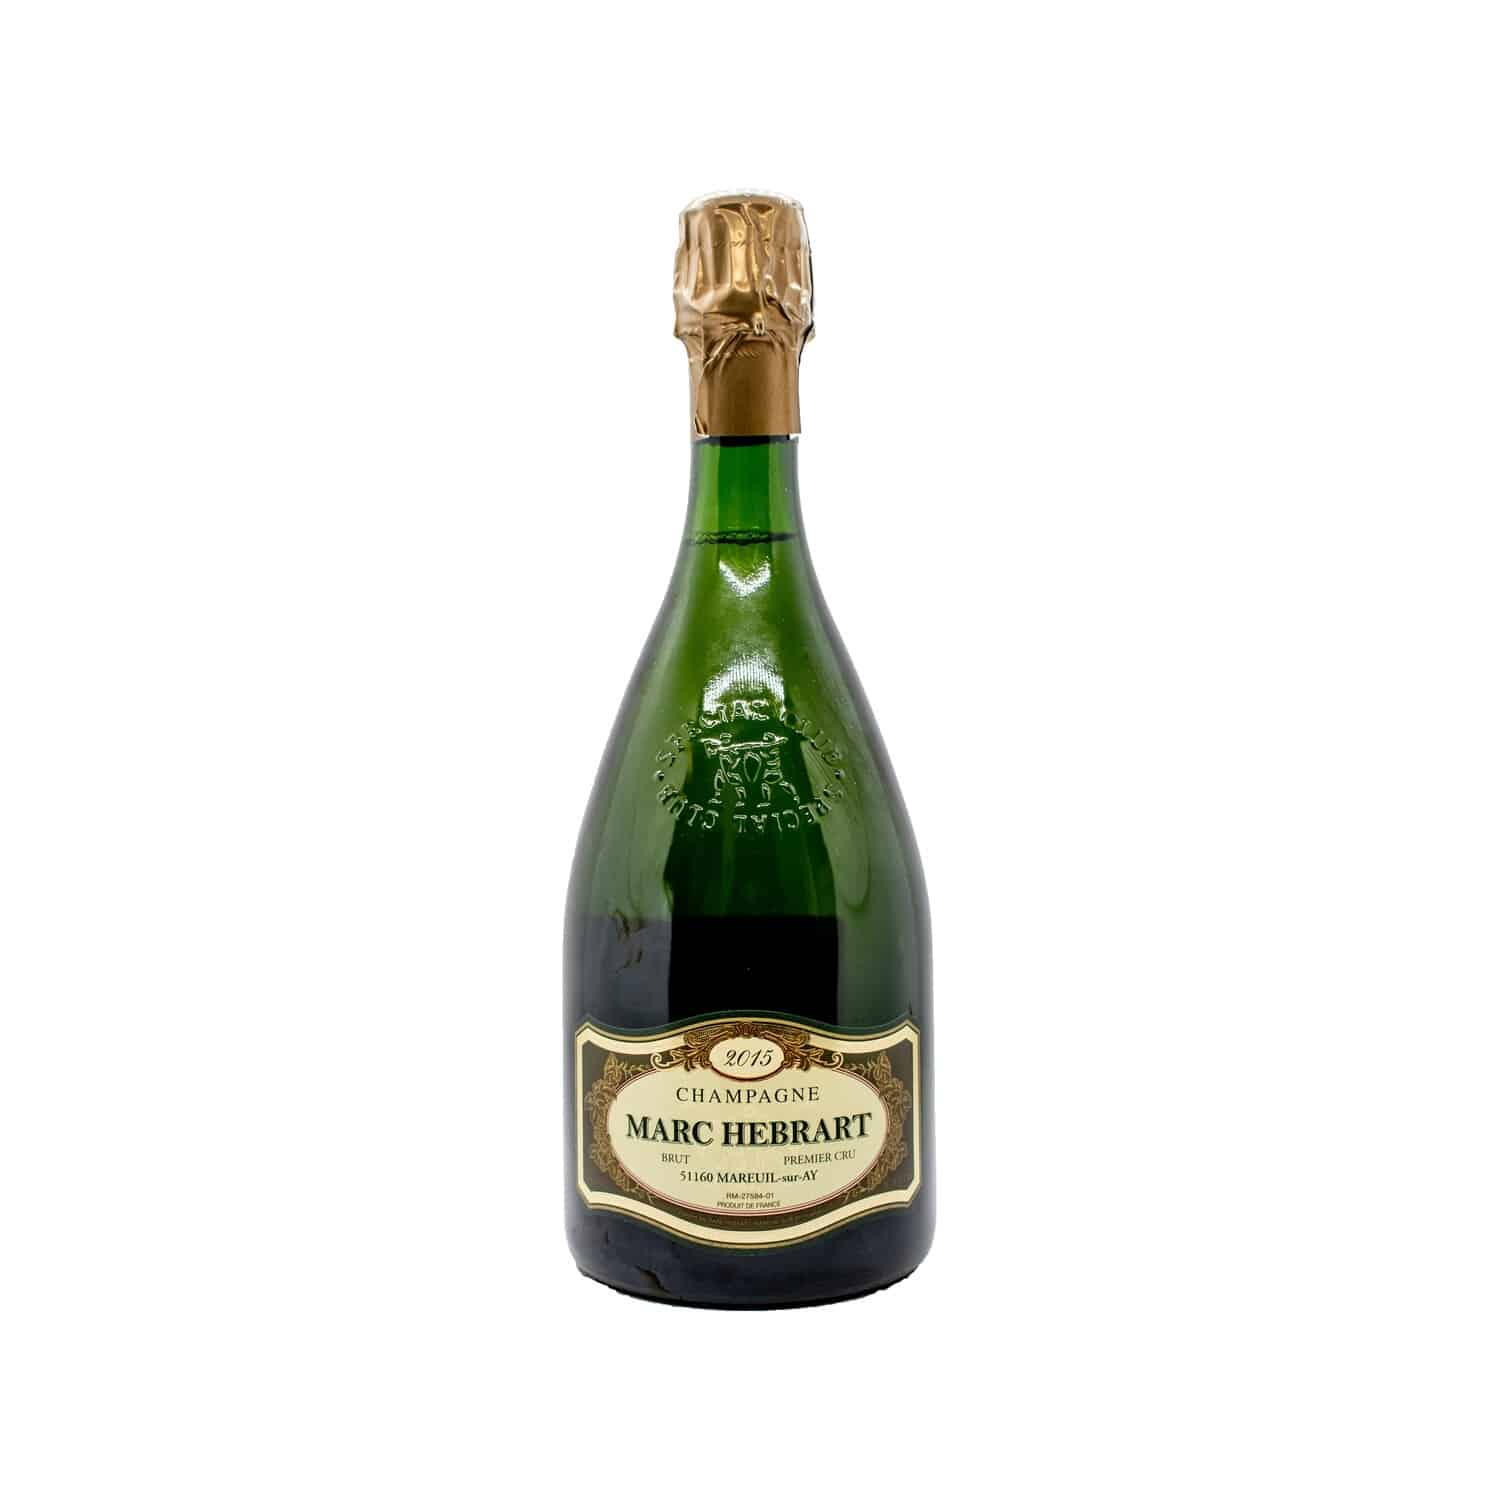 2015 Champagne Marc Hebrart Special Club Millesime Premier Cru France